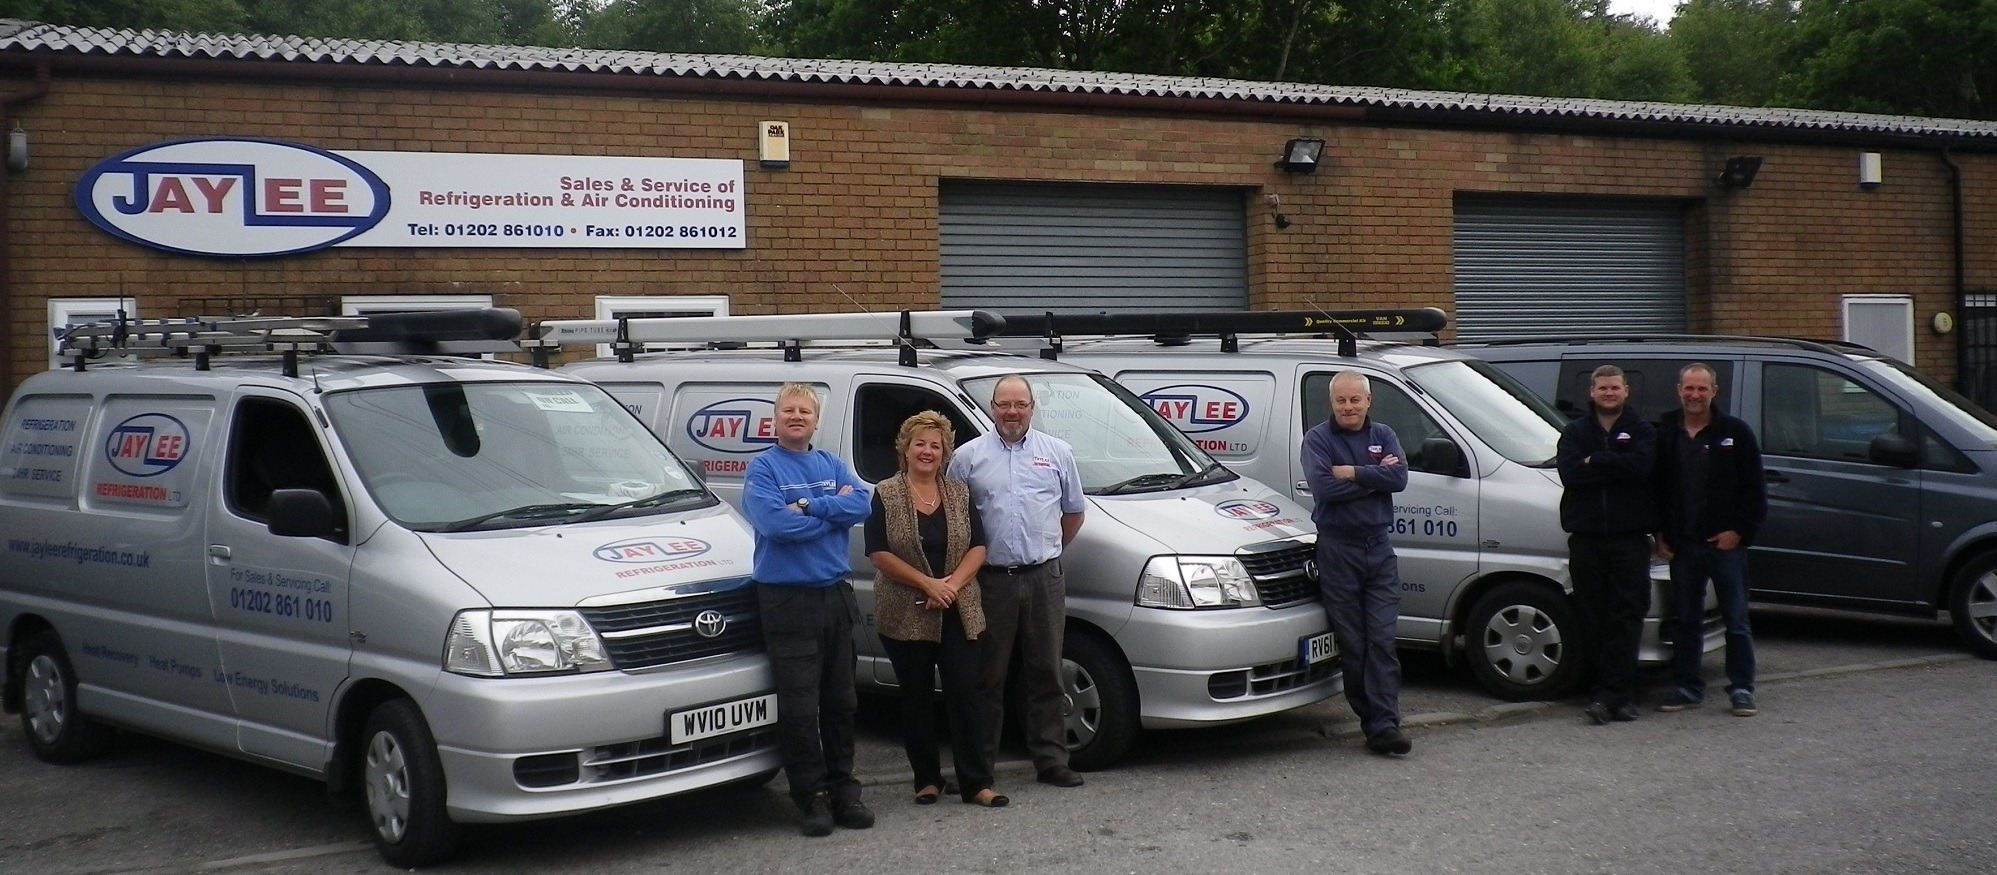 Air Conditioning Specialists in Dorset, Jaylee Refrigeration